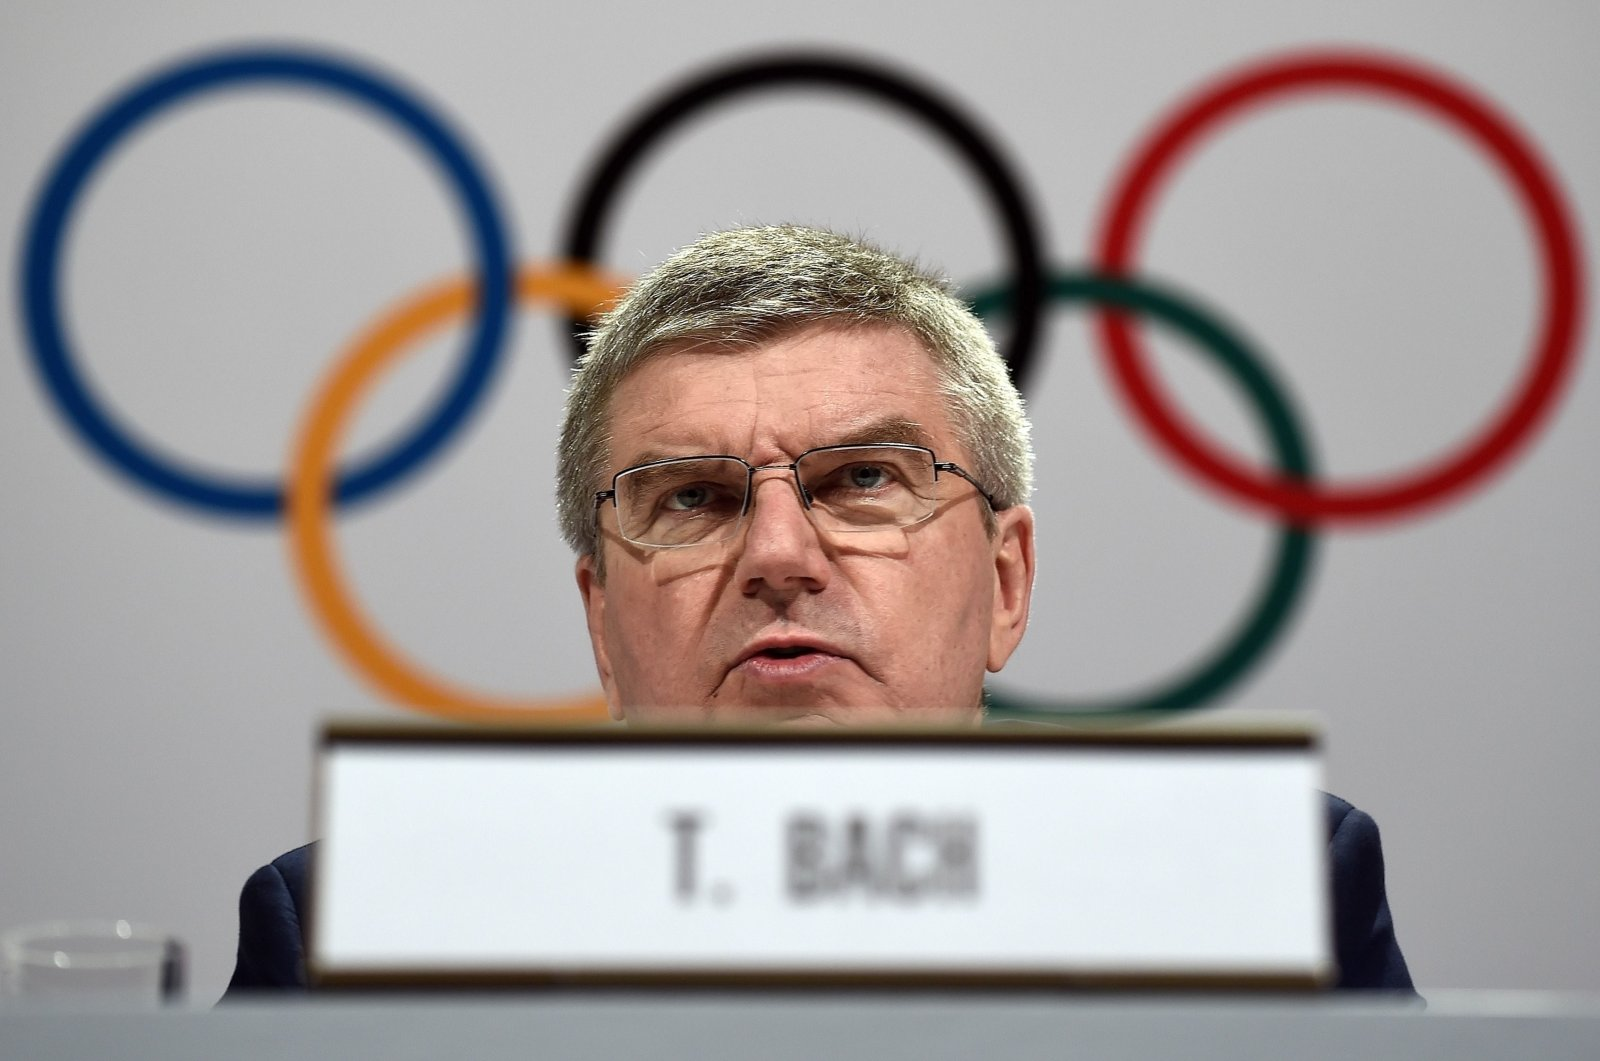 International Olympic Committee (IOC) President Thomas Bach gives his closing remarks during a press conference, Kuala Lumpur, Aug. 3, 2015. (AFP Photo)